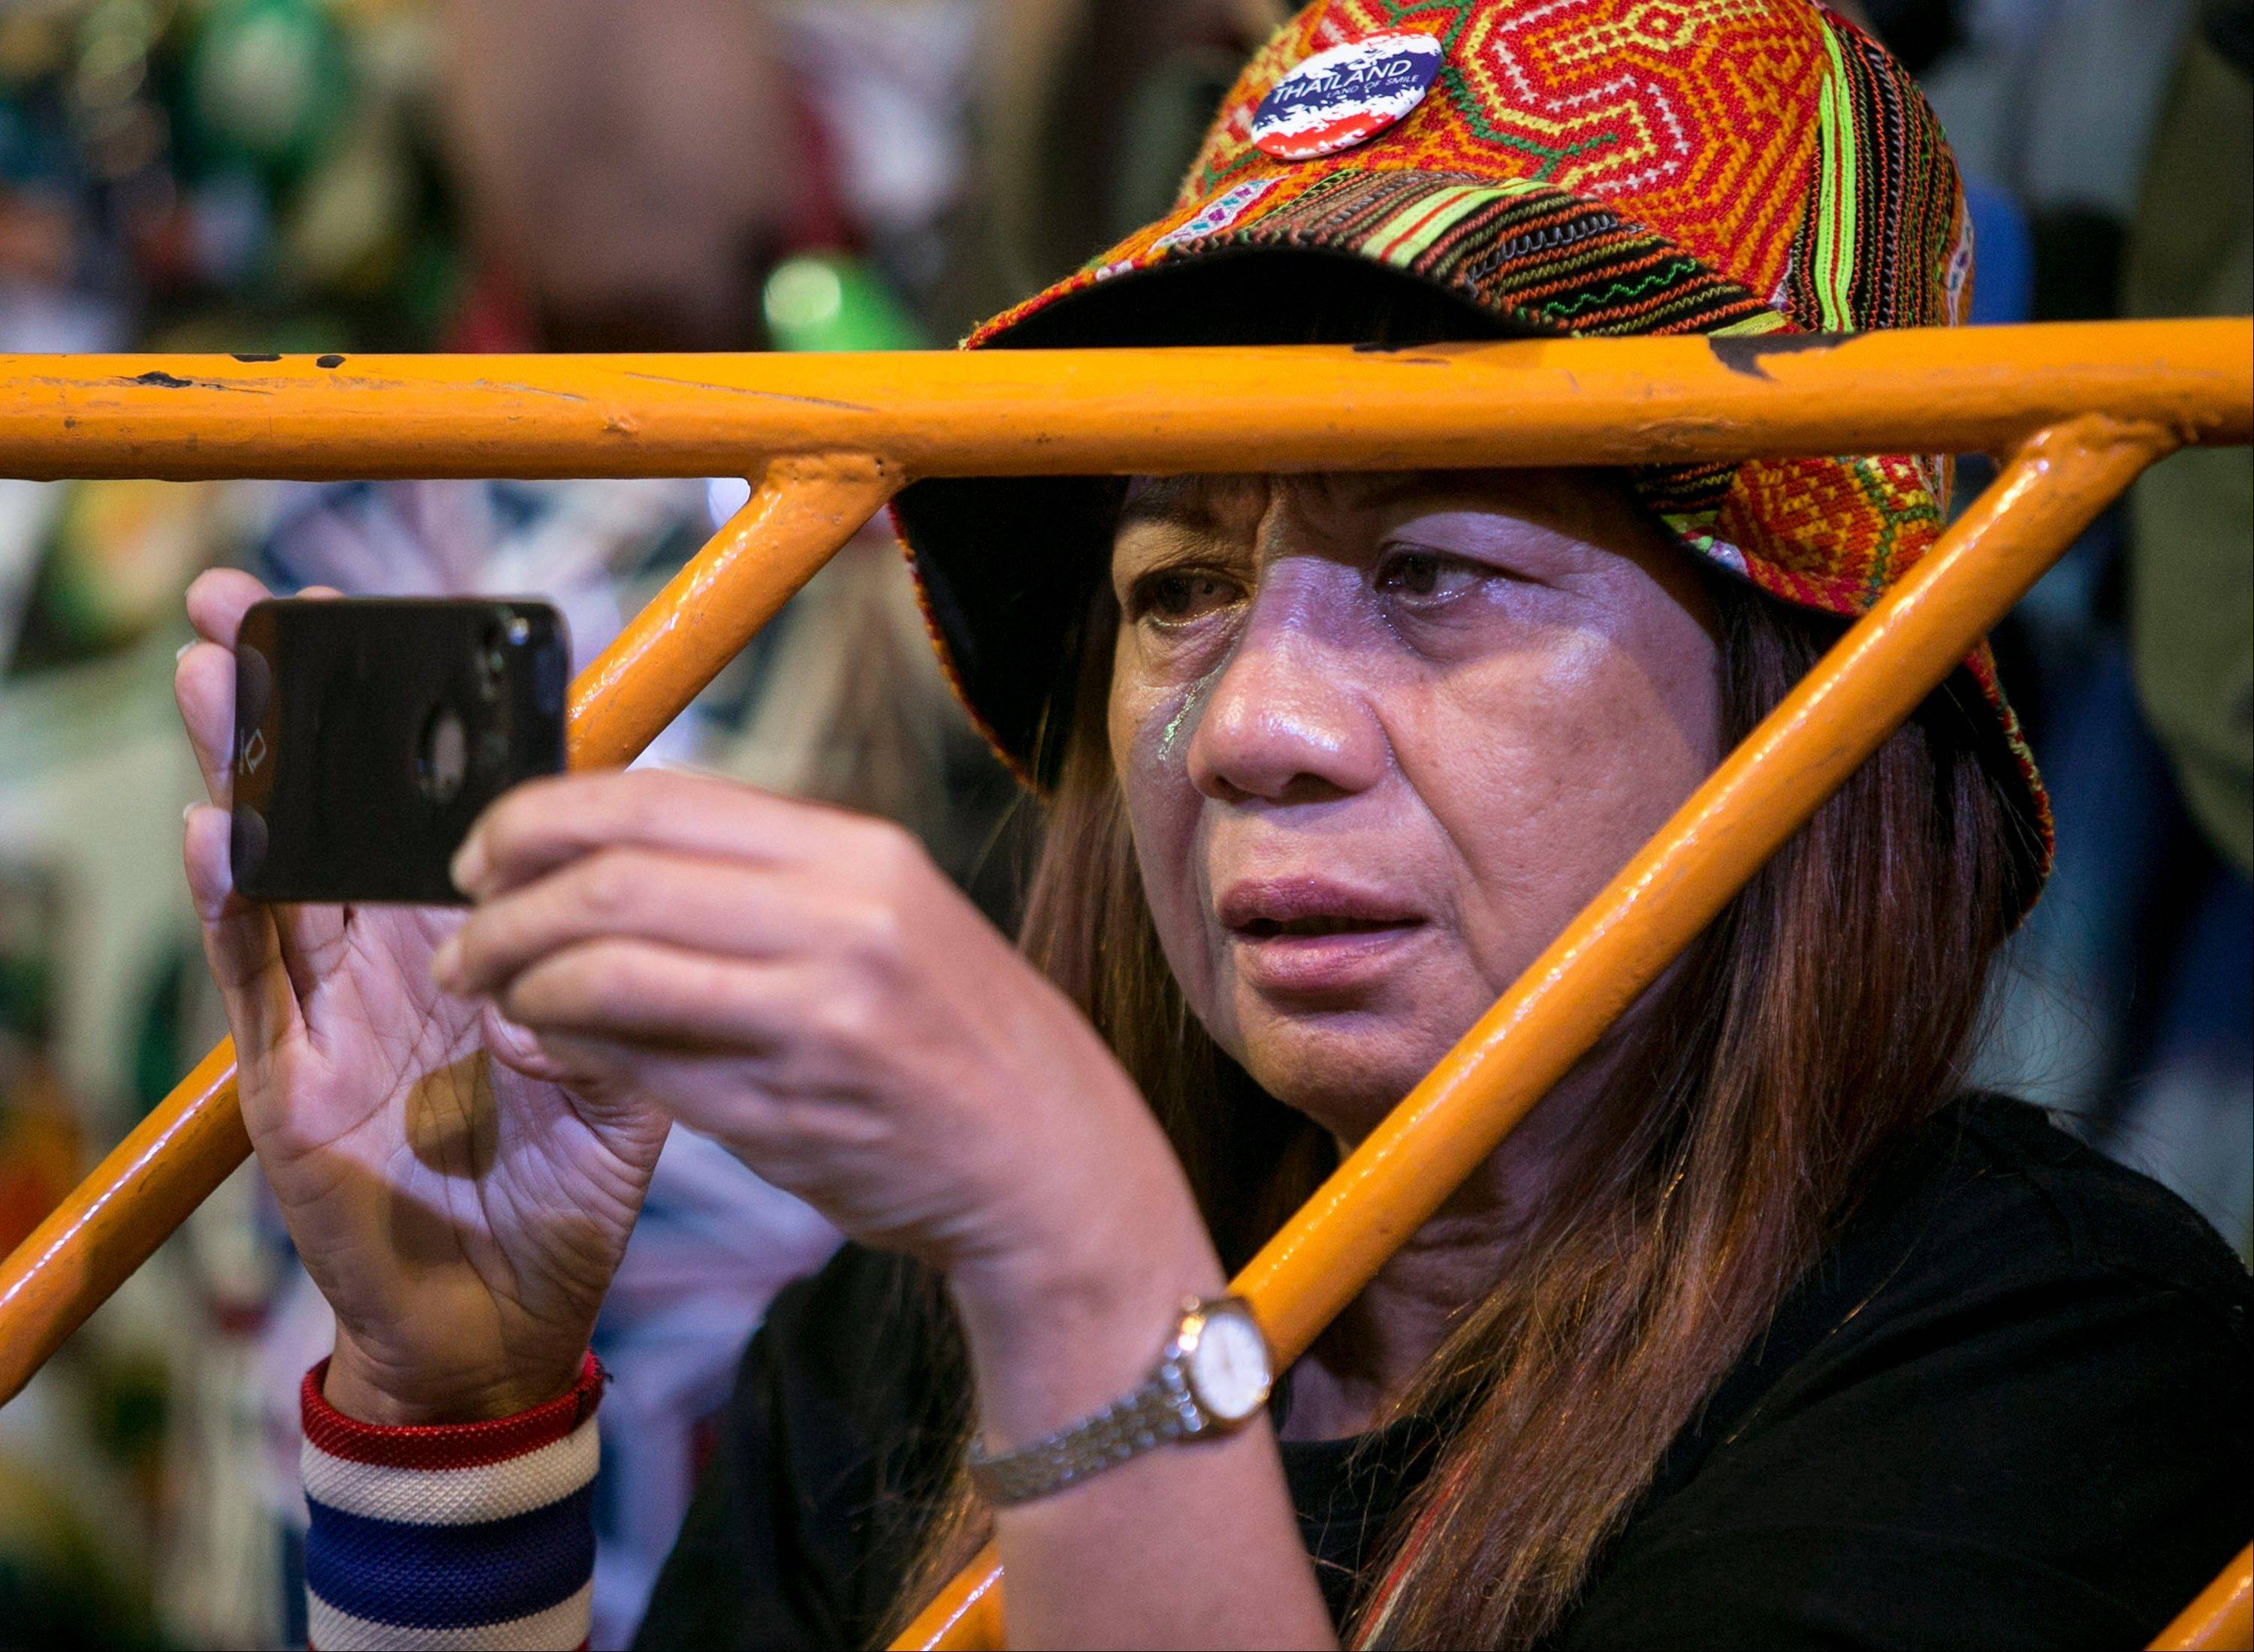 A Thai anti-government protester cries and takes picture during a condolence ceremony for Yuthana Ong-art, who was shot and killed on Friday night, in Bangkok, Thailand. Gunmen killed the anti-government activist and wounded two others in Thailand�s capital on Saturday, while protesters elsewhere blocked candidates from registering for upcoming elections, deepening a political crisis that threatens to derail democracy in the Southeast Asian nation.